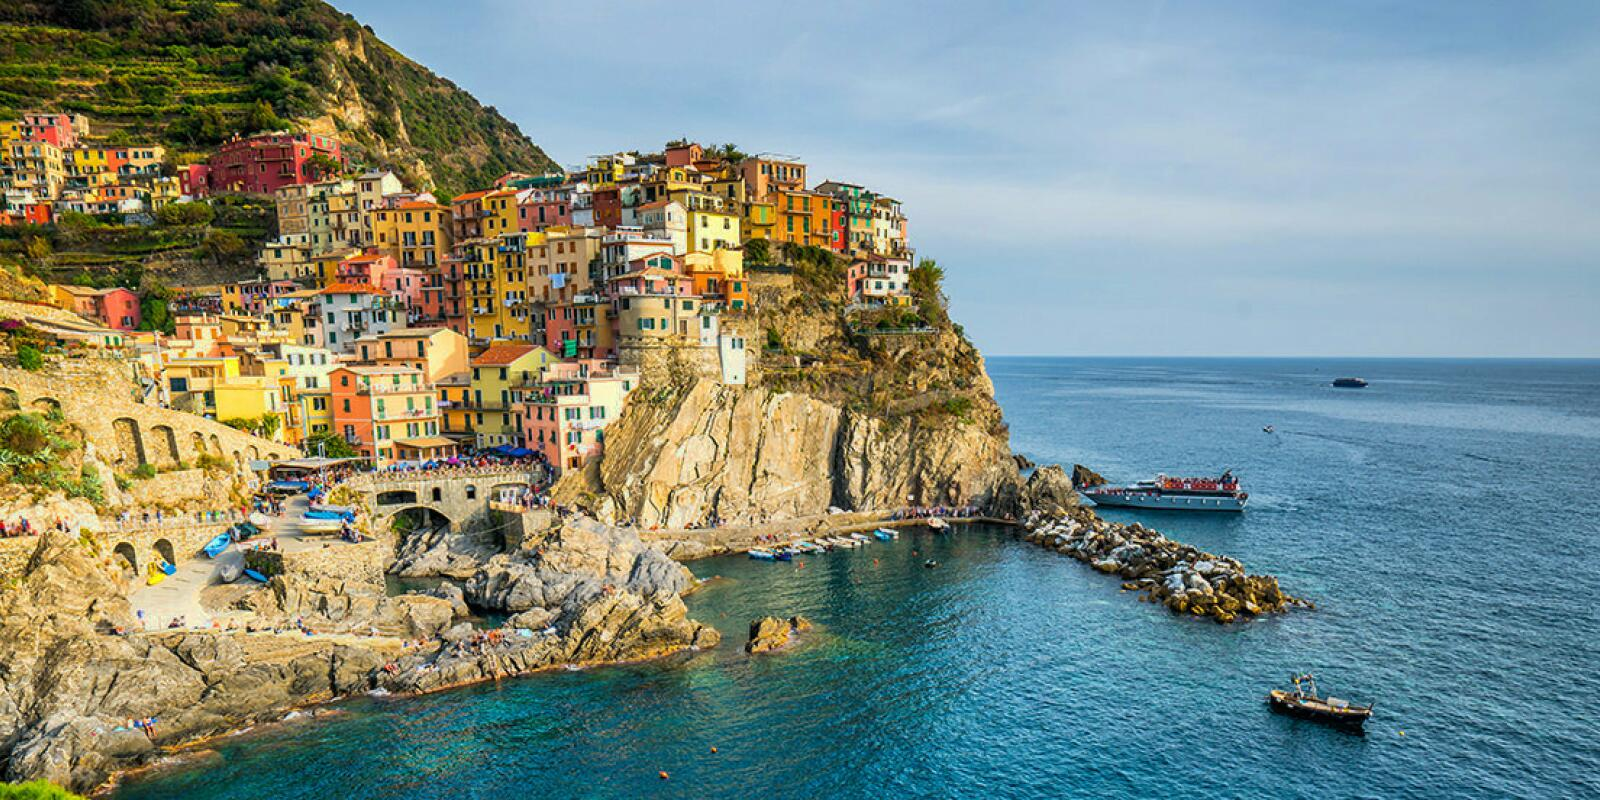 Sailing holidays in Liguria and Cinque Terre